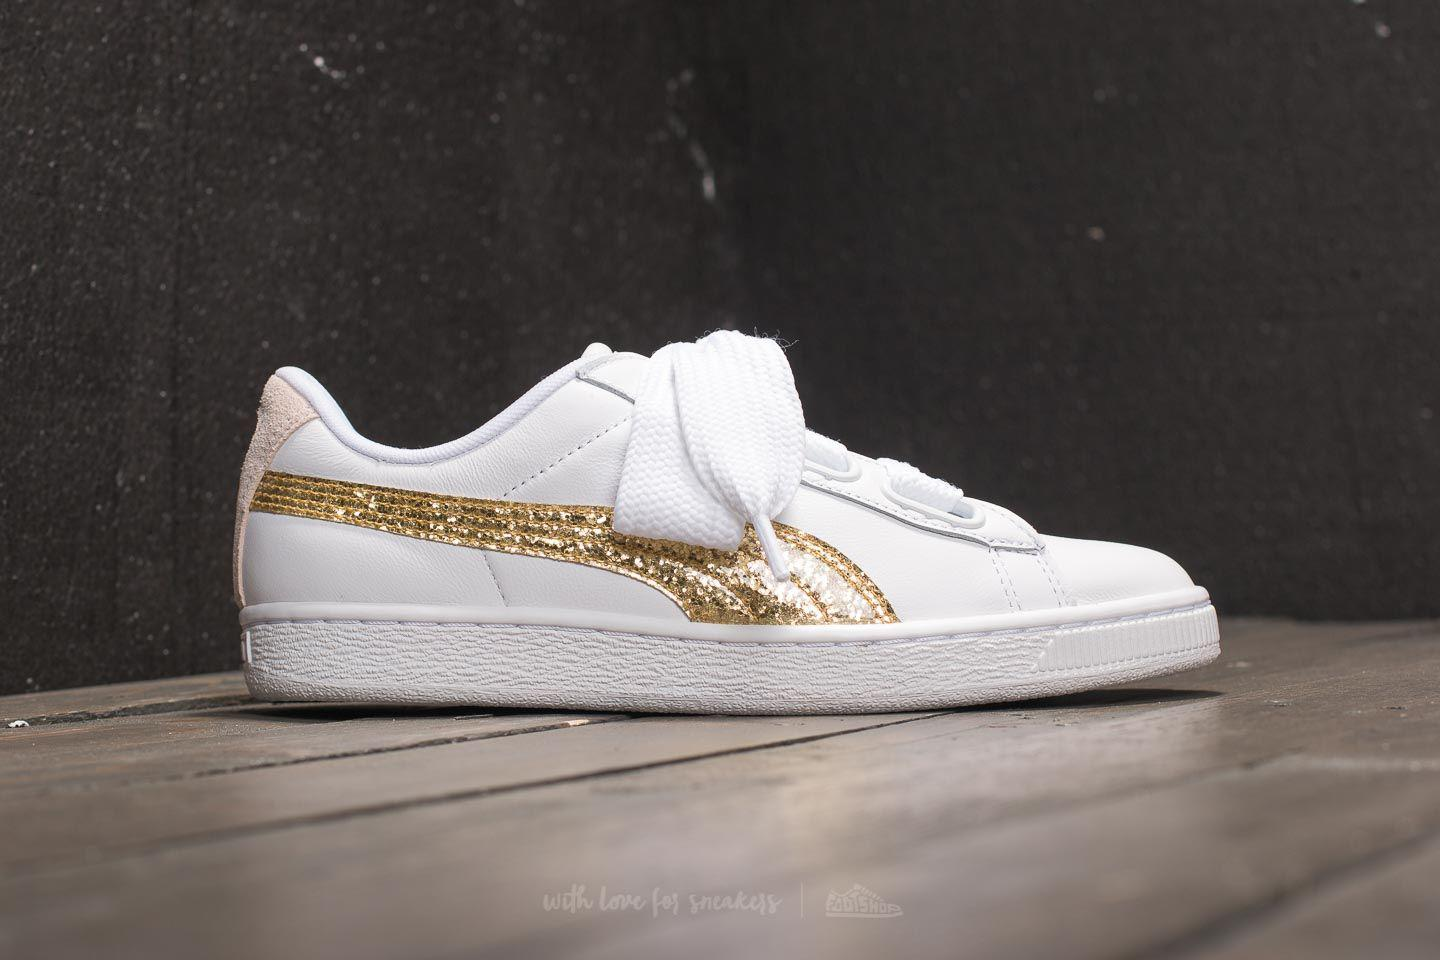 BASKET HEART GLITTER WNS - FOOTWEAR - Low-tops & sneakers Puma P5GIxyES